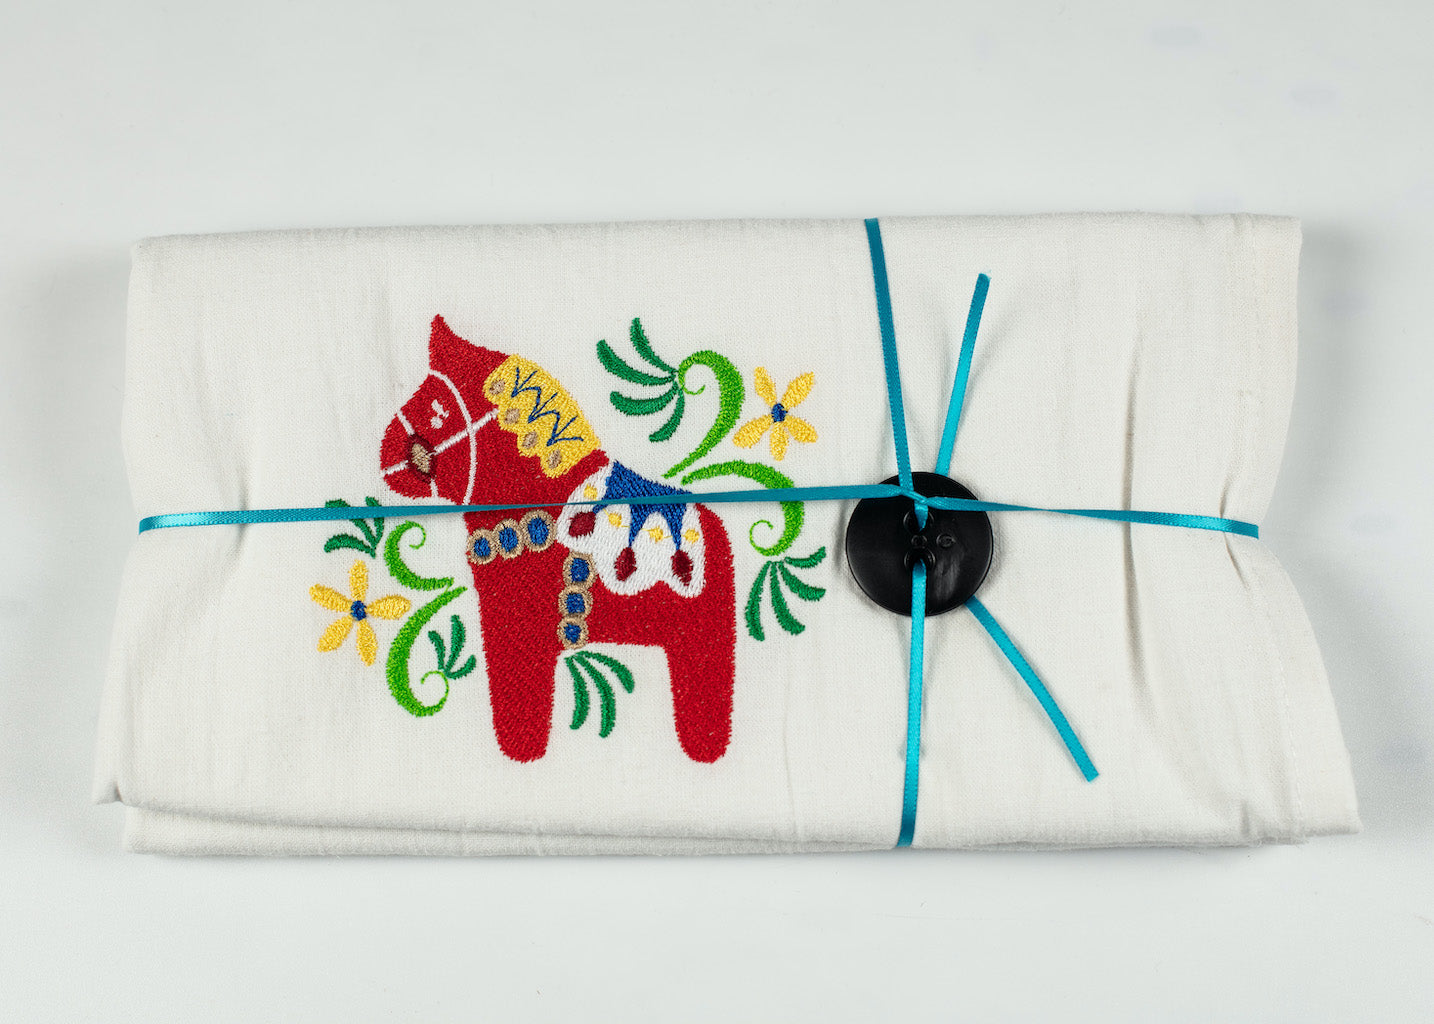 "RED DALA HORSE EMBROIDERED FLOURSACK TOWEL 32"" X 36"" MADE IN ST. BONIFACIUS MN"